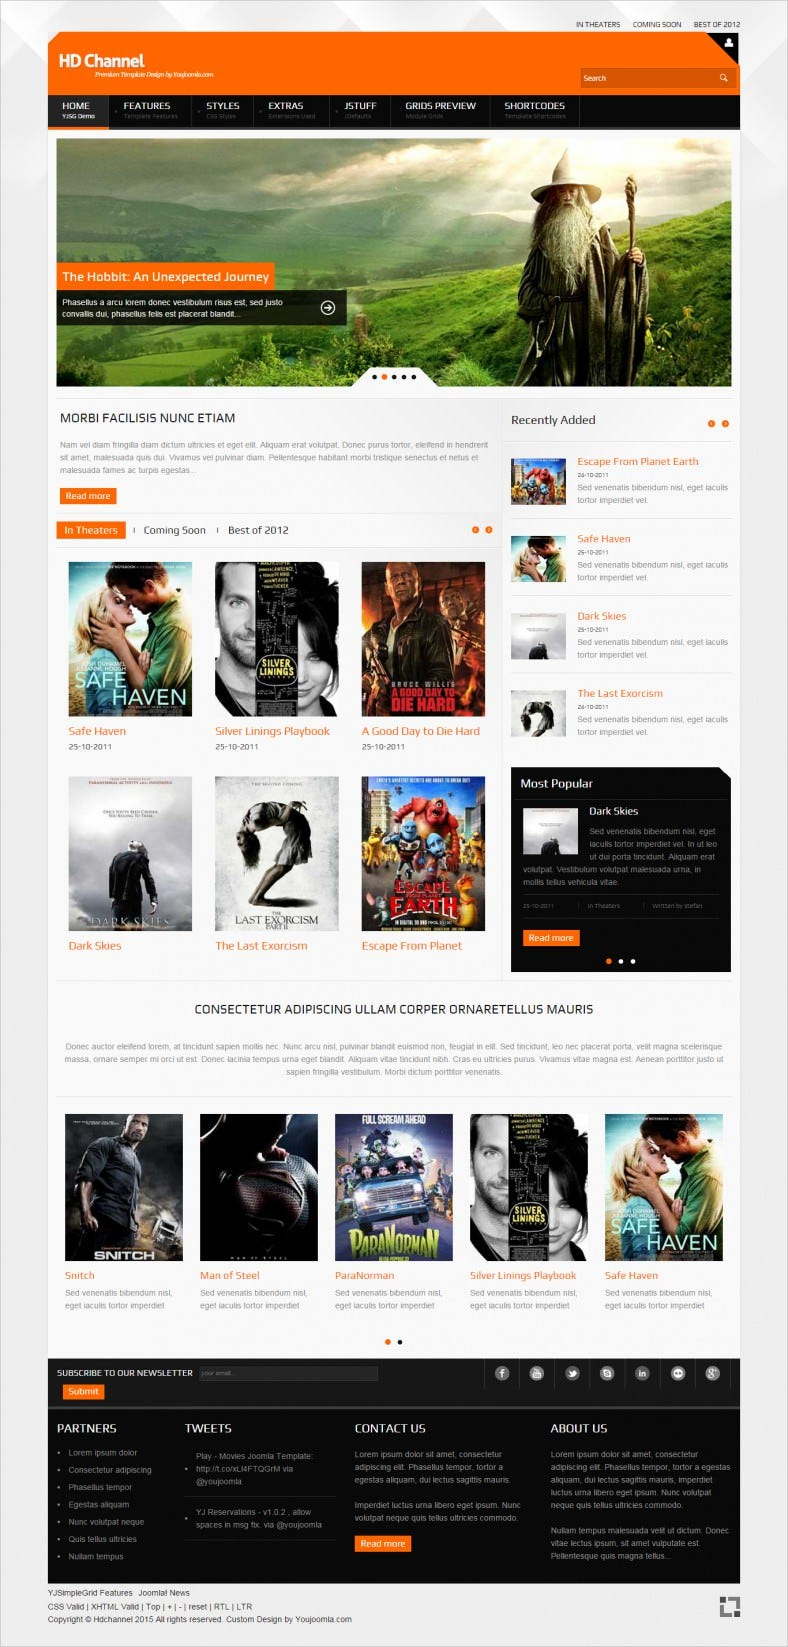 movies hd channel joomla website template 788x1647